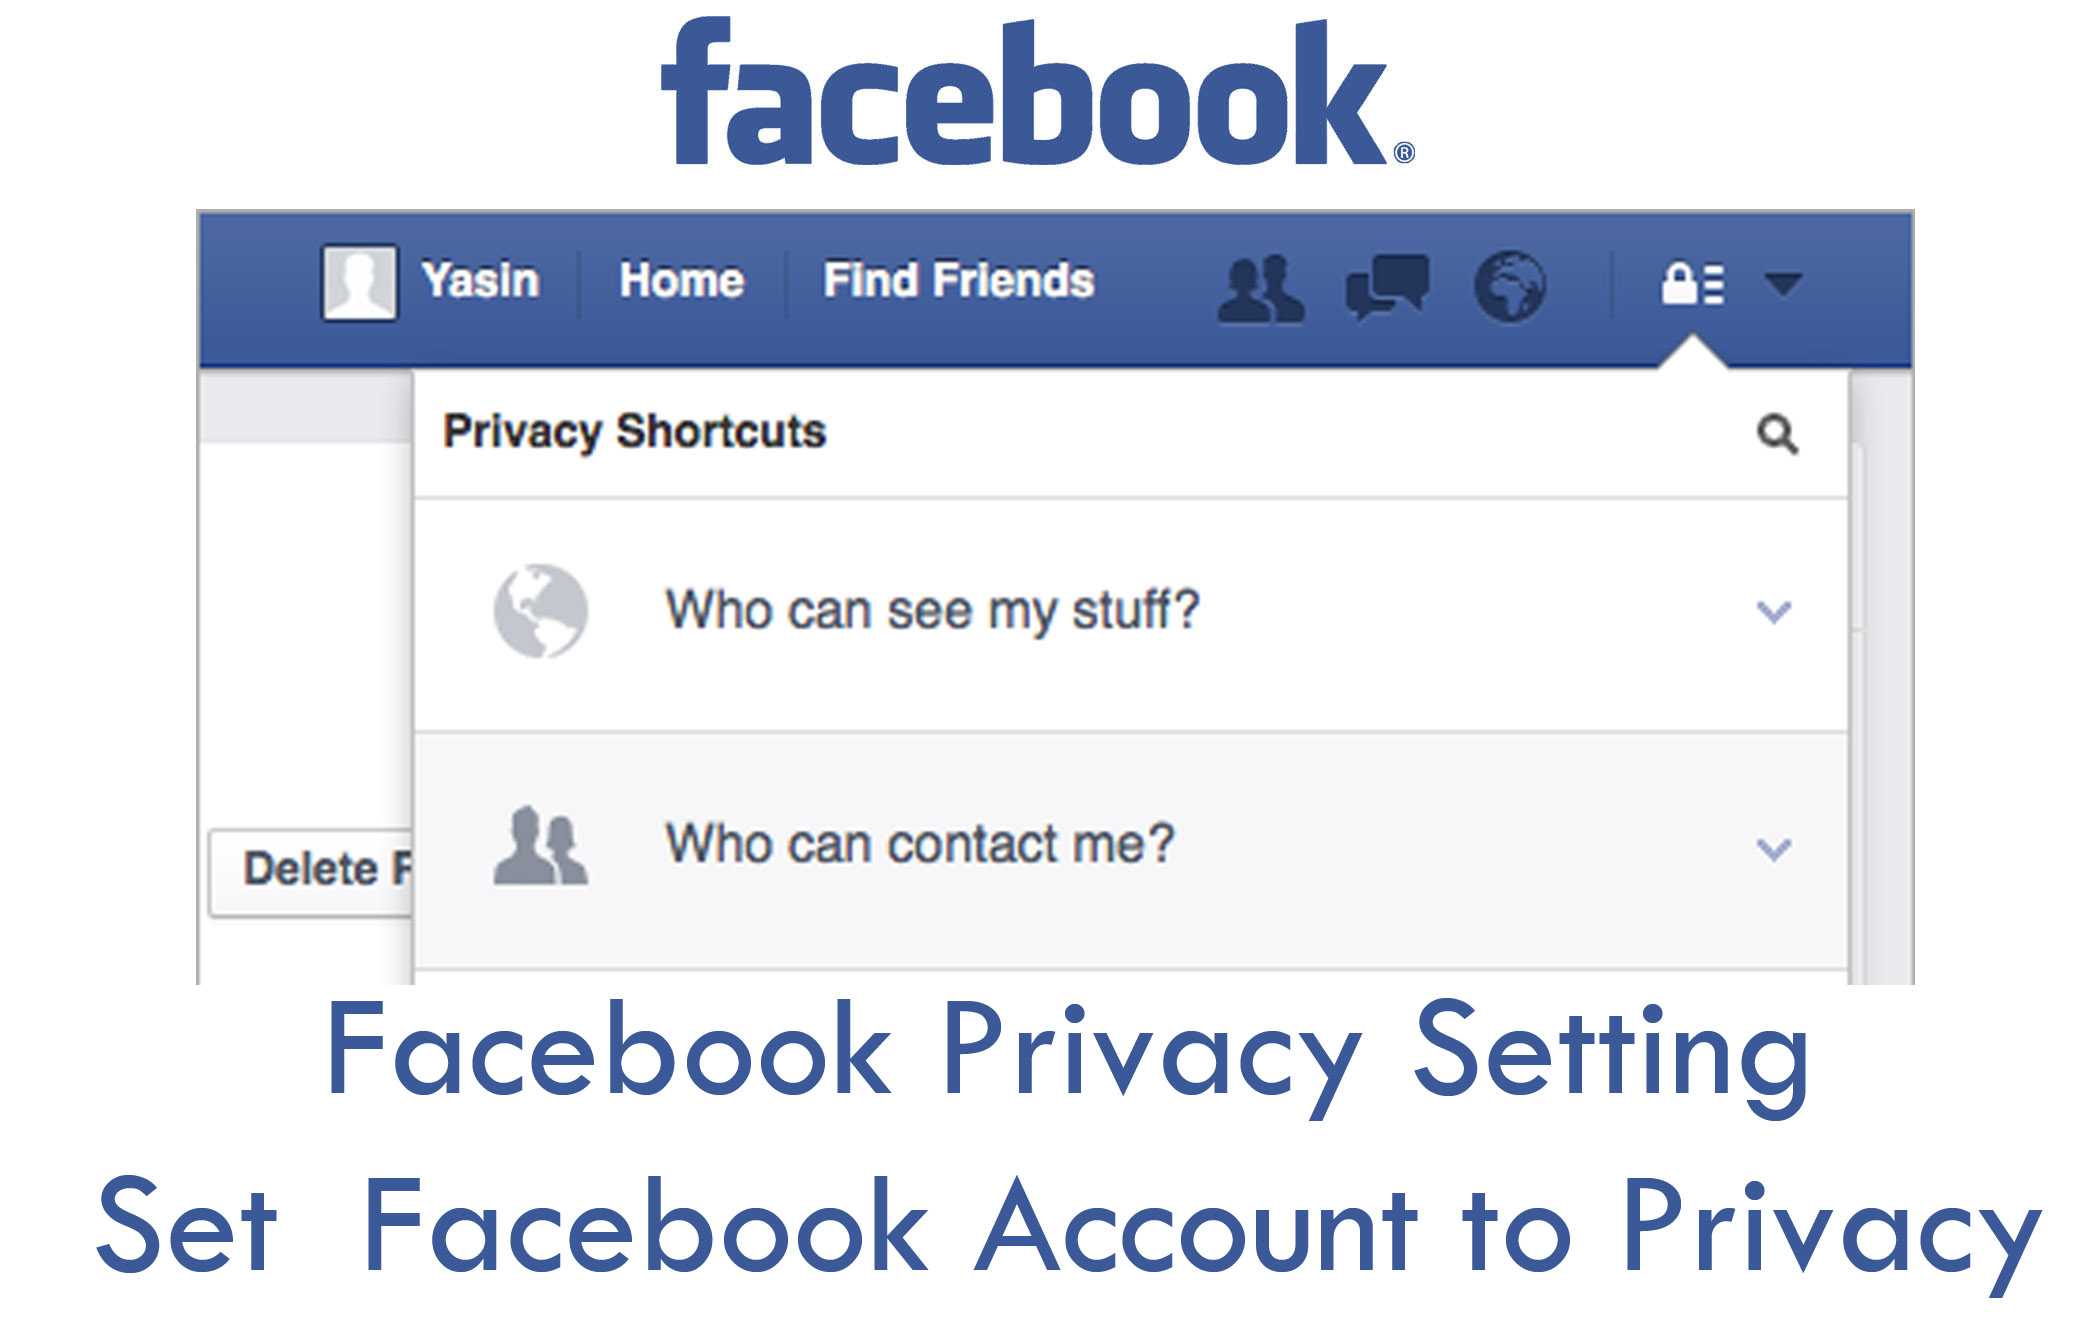 Facebook Privacy Setting - Set Facebook Account to Privacy